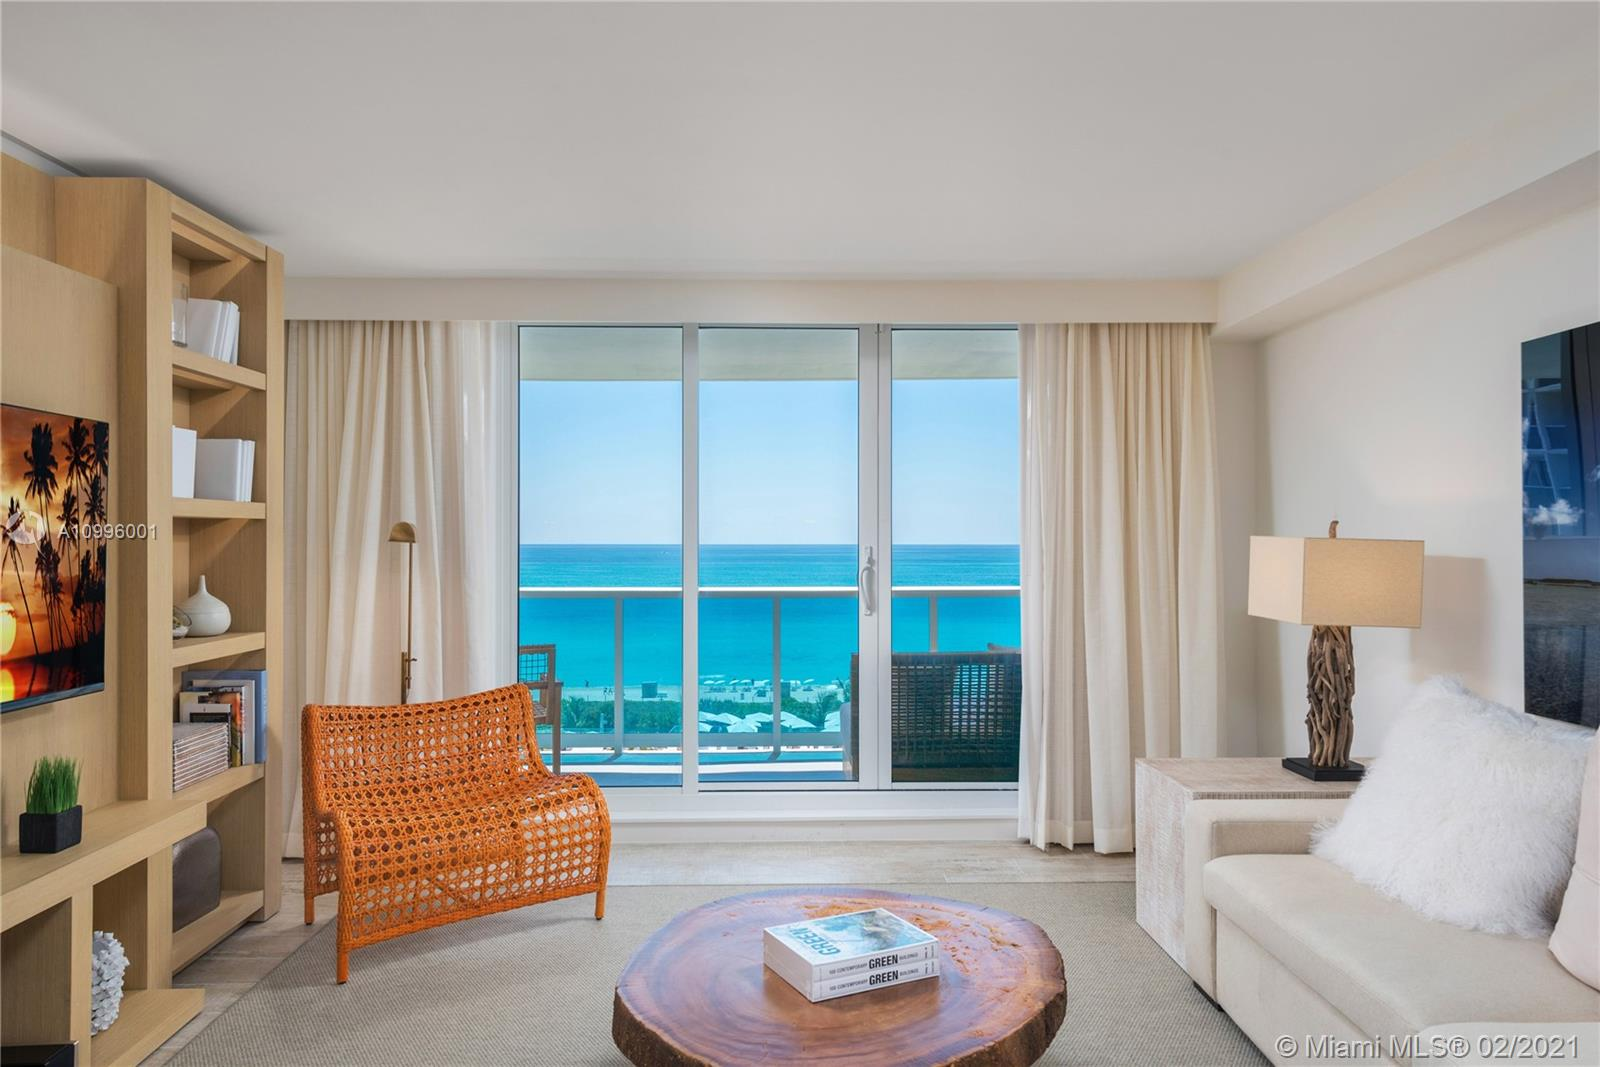 First time to the market! Uniquely positioned direct oceanfront 1 bedroom, 1 bathroom residence, 1/2 in the entire property. Fully turn-key with the hotel furniture package designed and accessorized by celebrated interior architect Debora Aguilar. Full service and highly amenitized building.  The 1 Hotel & Homes offers an effortless ownership experience in the best location in South Beach.